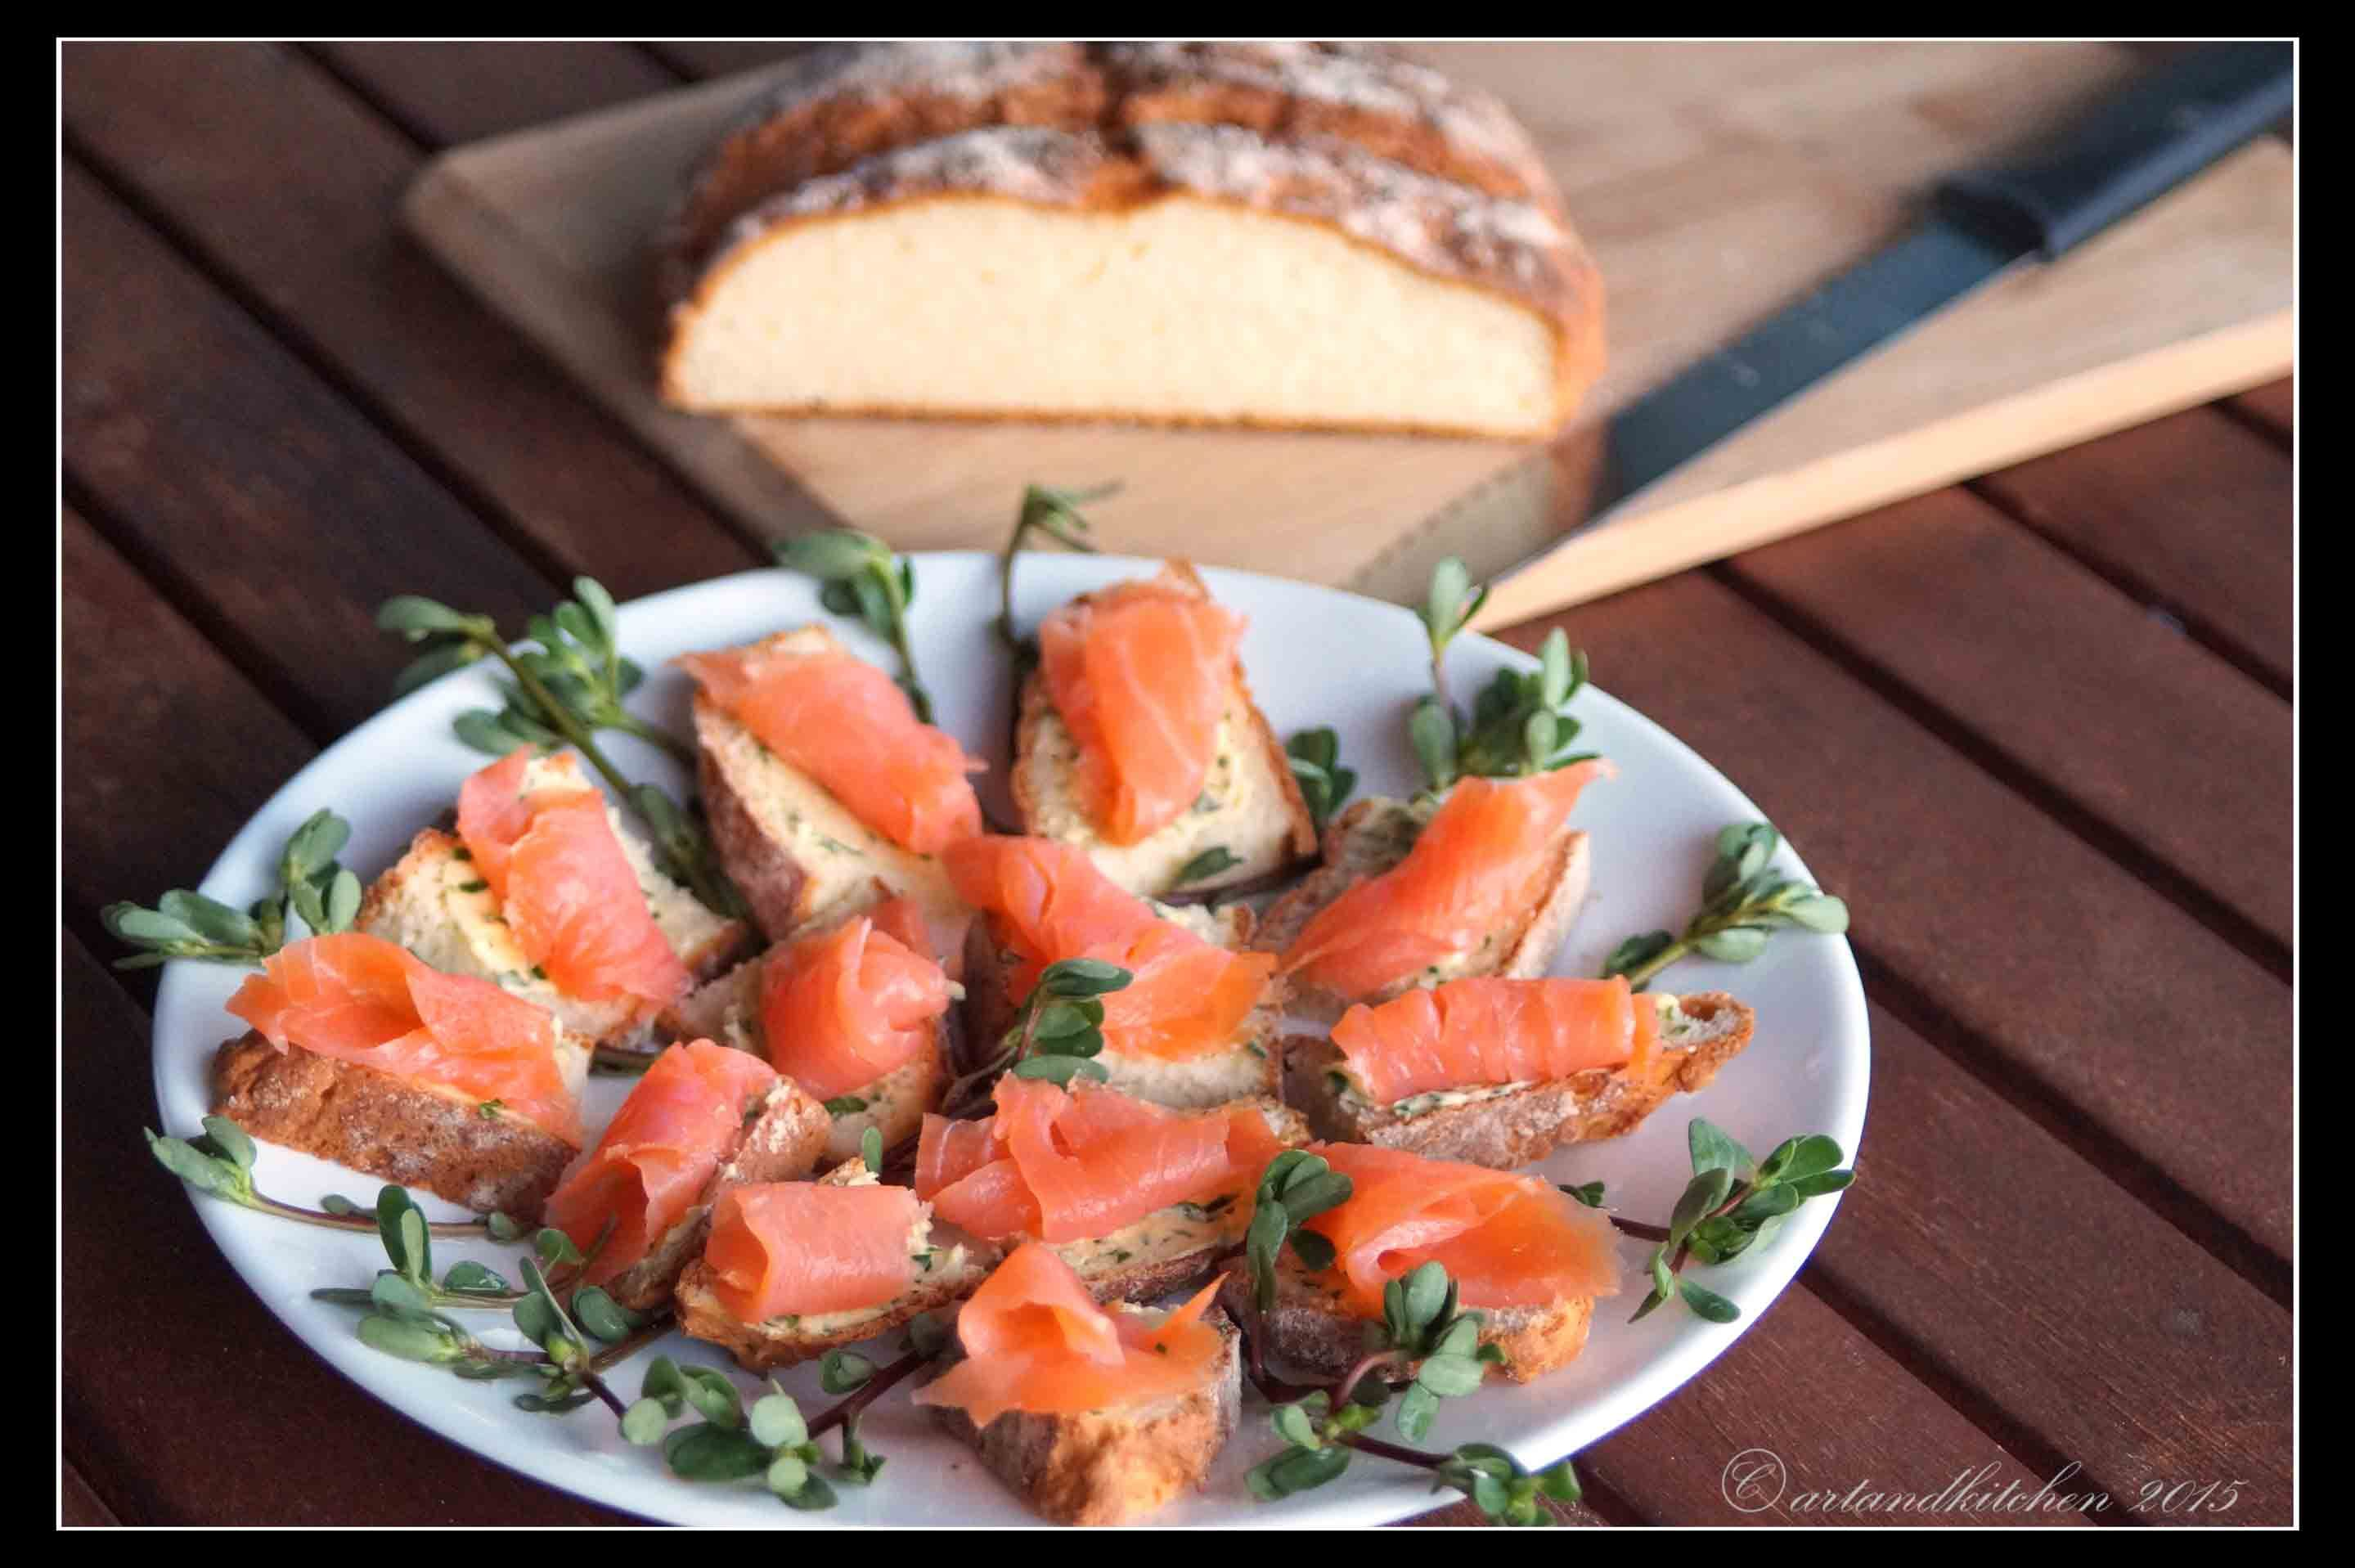 smoked-salmon-on-irish-soda-bread-with-chive-butter-1.jpg 2,879×1,917 pixels